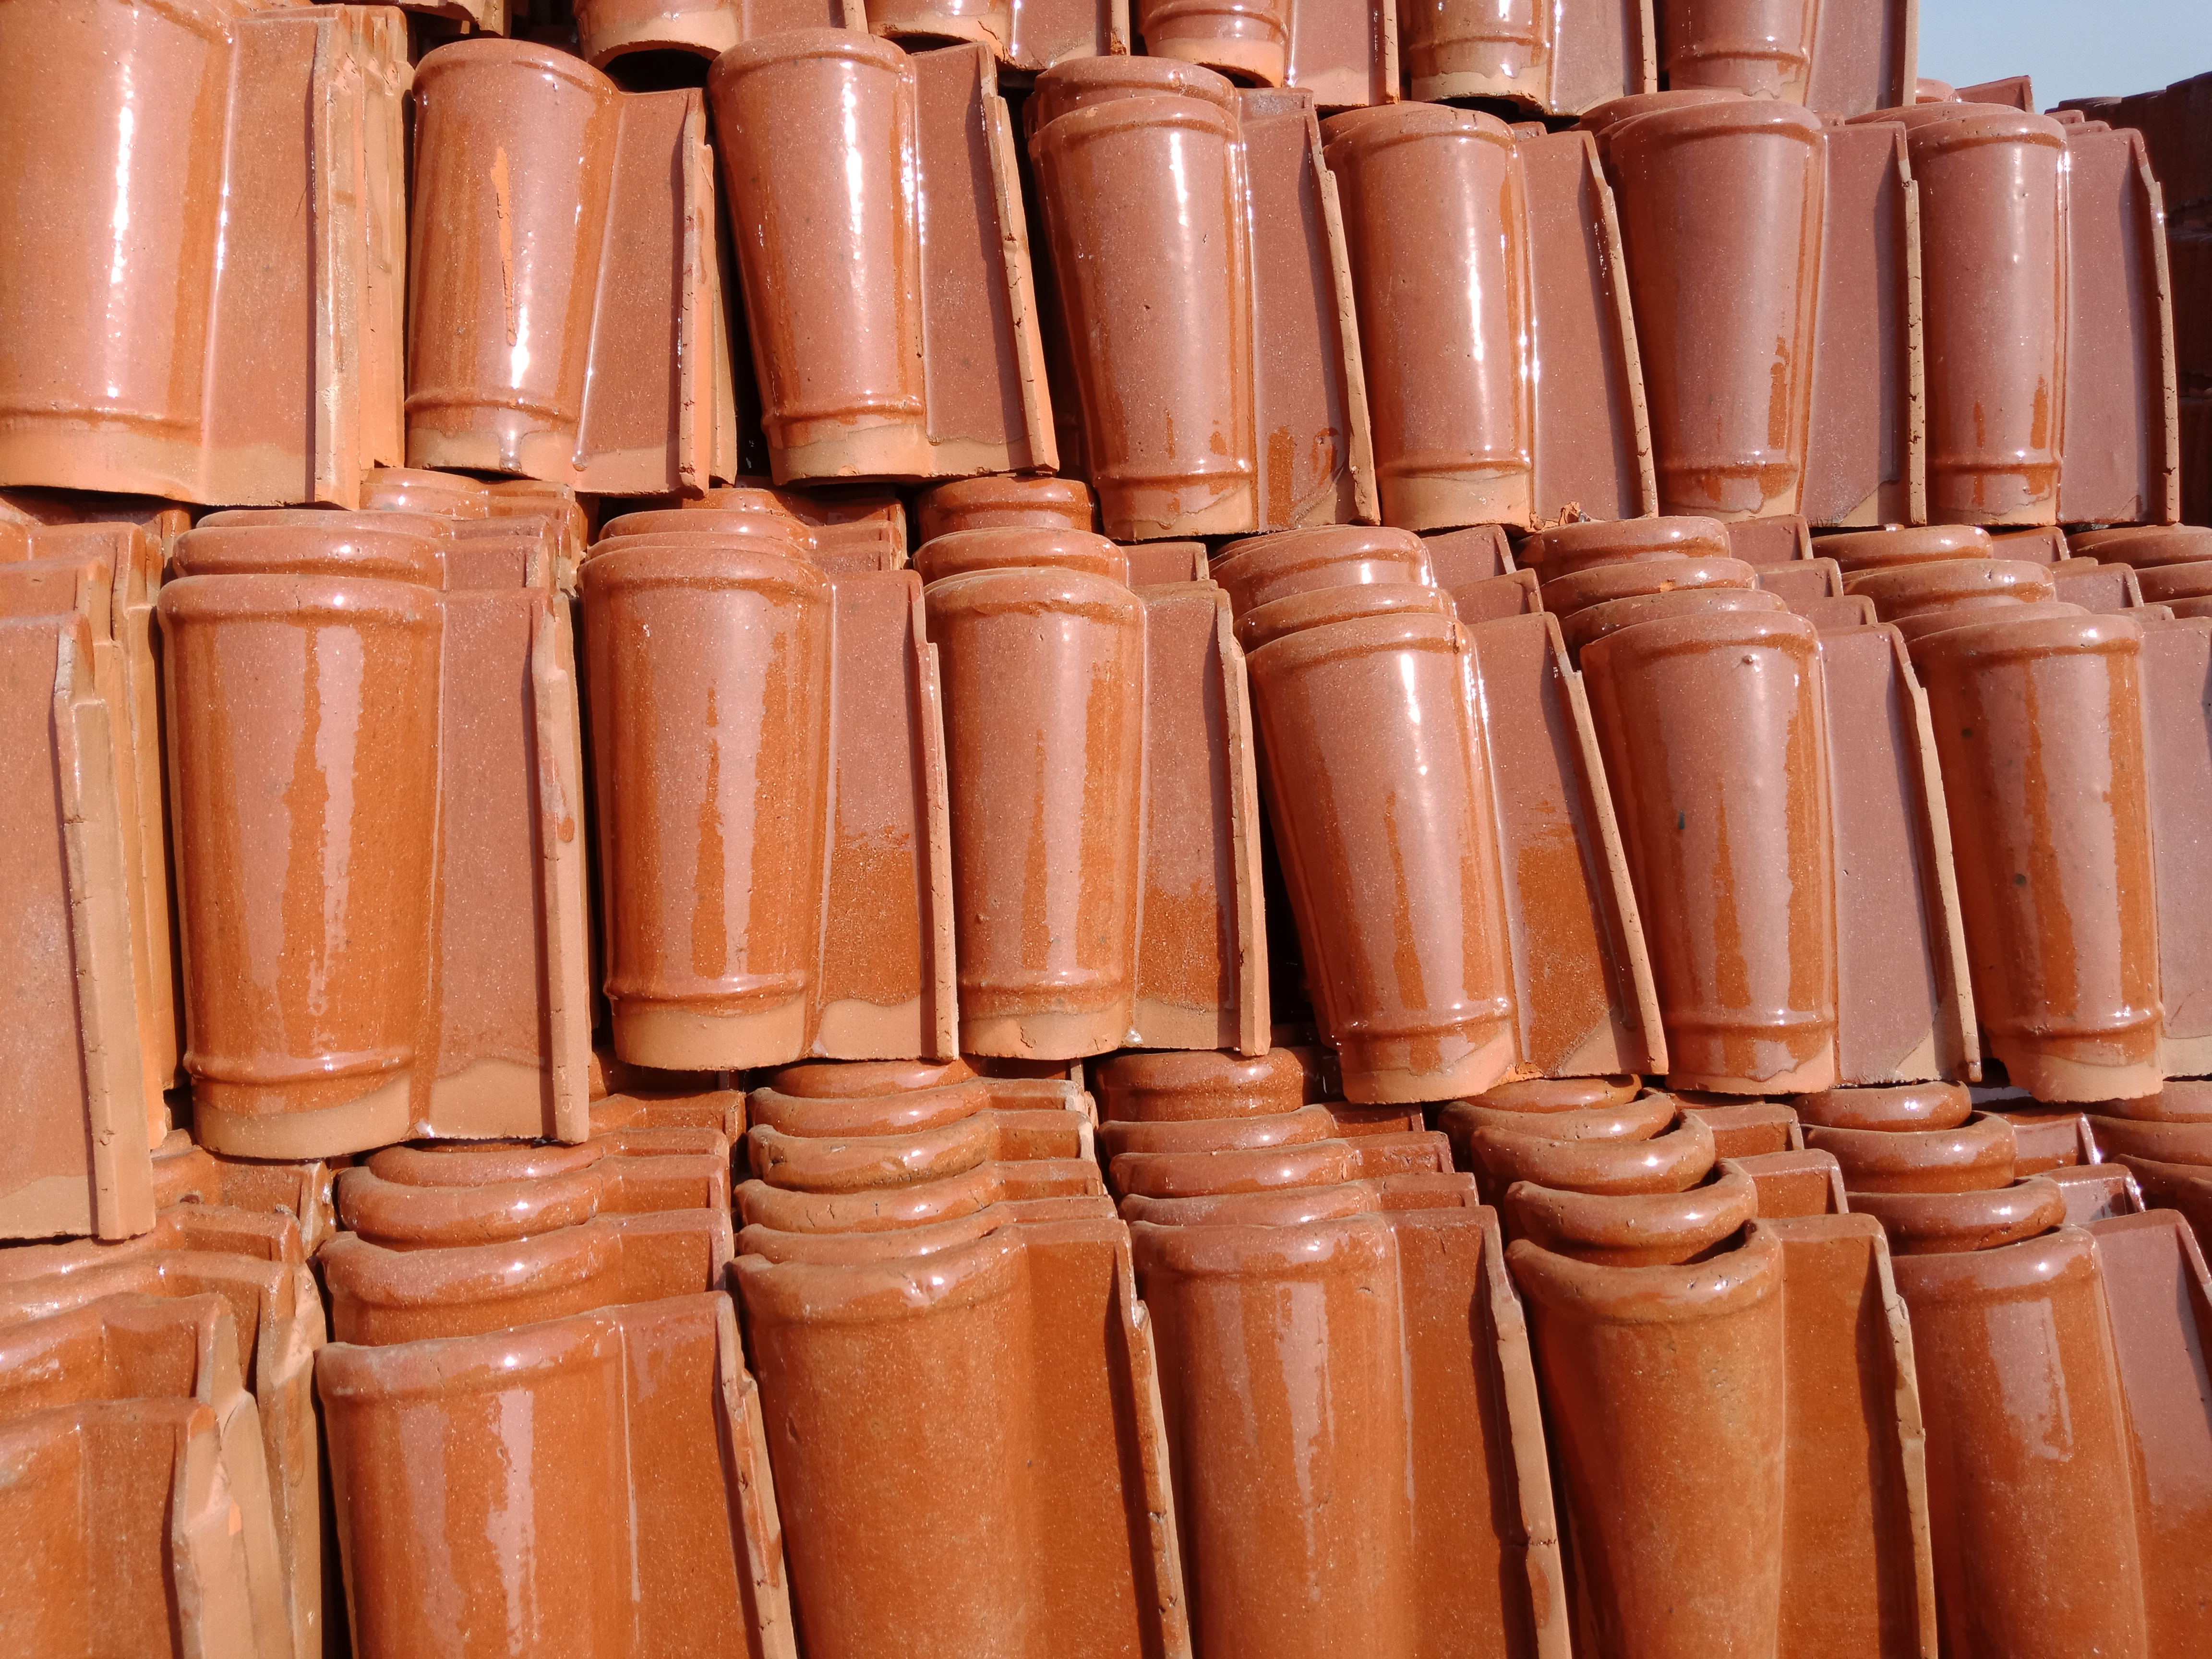 1 Terracotta Glazed Roofing Tiles Khaprail Tiles Rates in Pakistan Images.